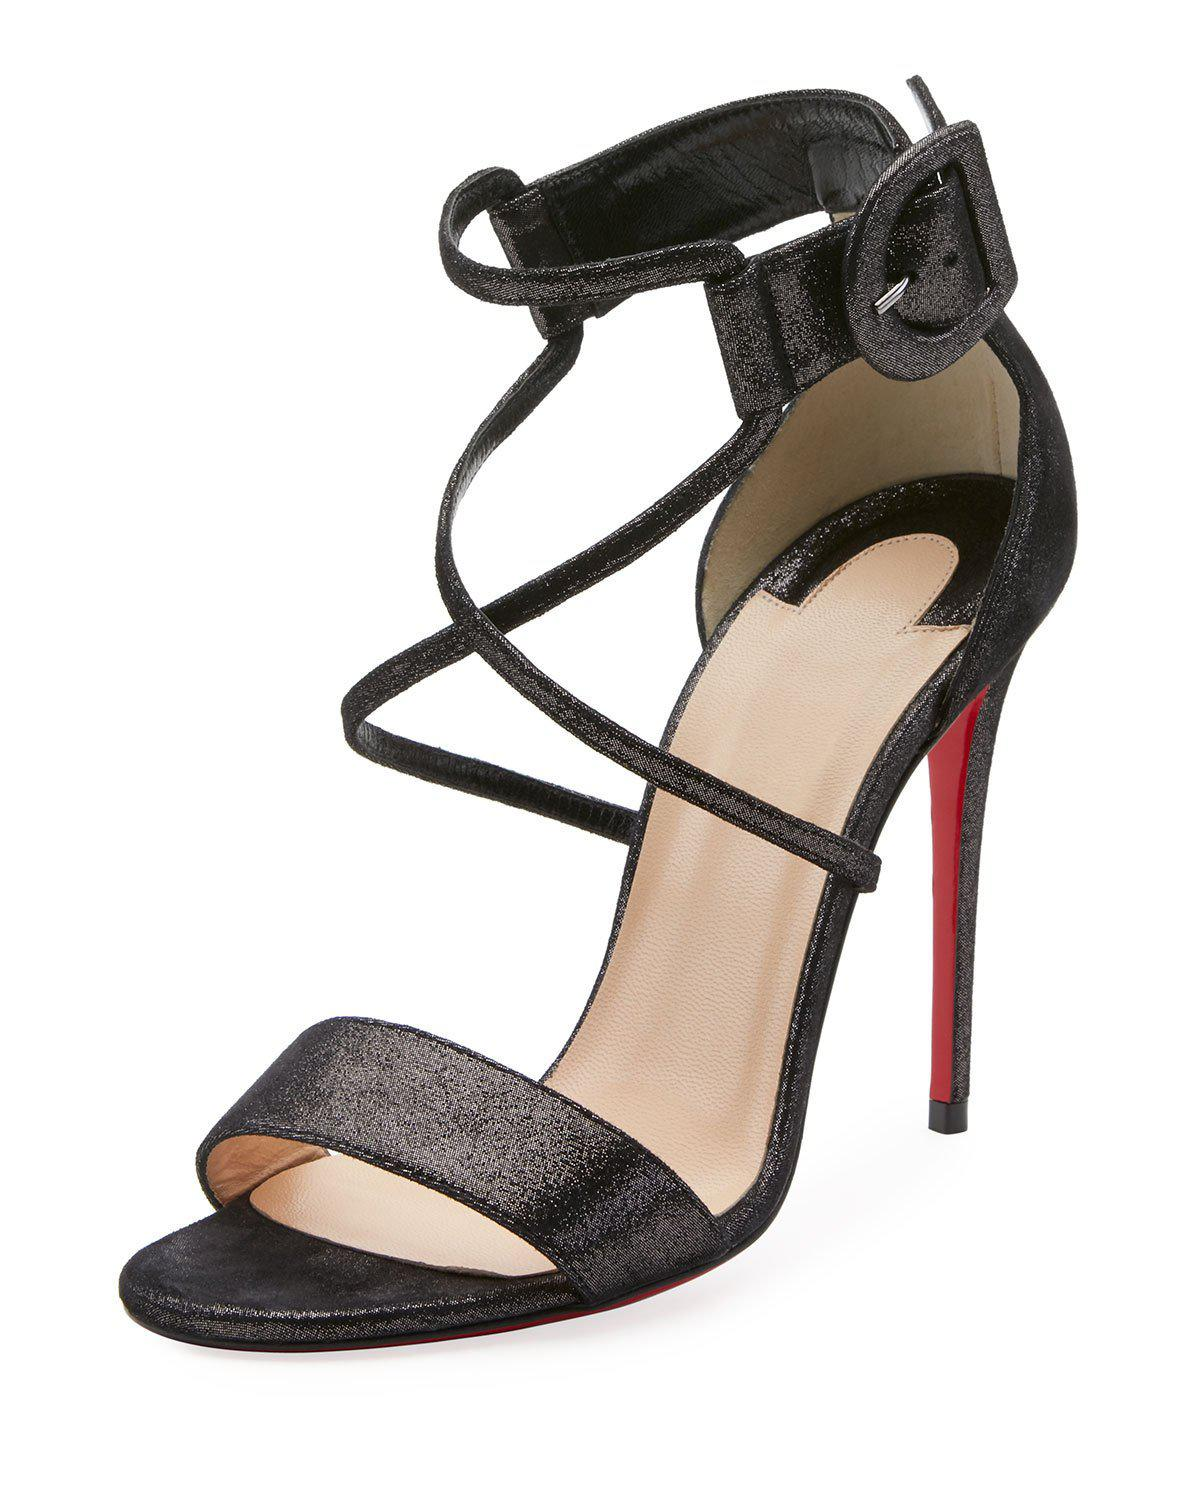 2957884a37 Christian Louboutin. Women's Black Choca 100mm Metallic Suede Red Sole  Sandal